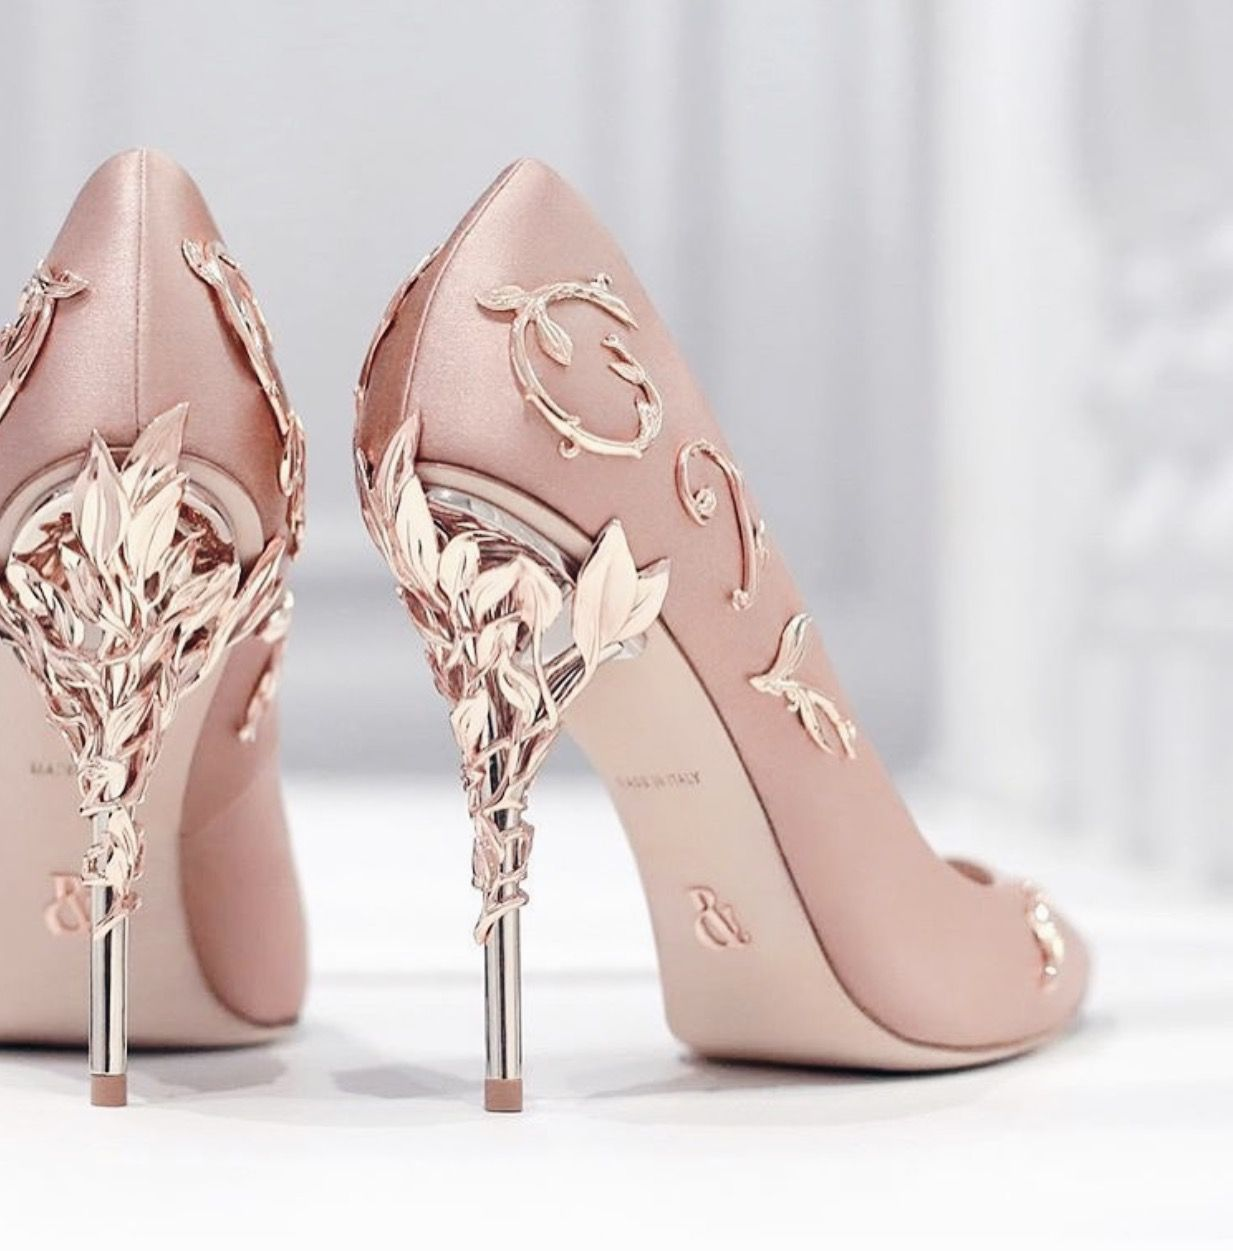 Ralph and Russo Eden Pumps - For All Shoe Lovers! | Neutral / Pastel ...